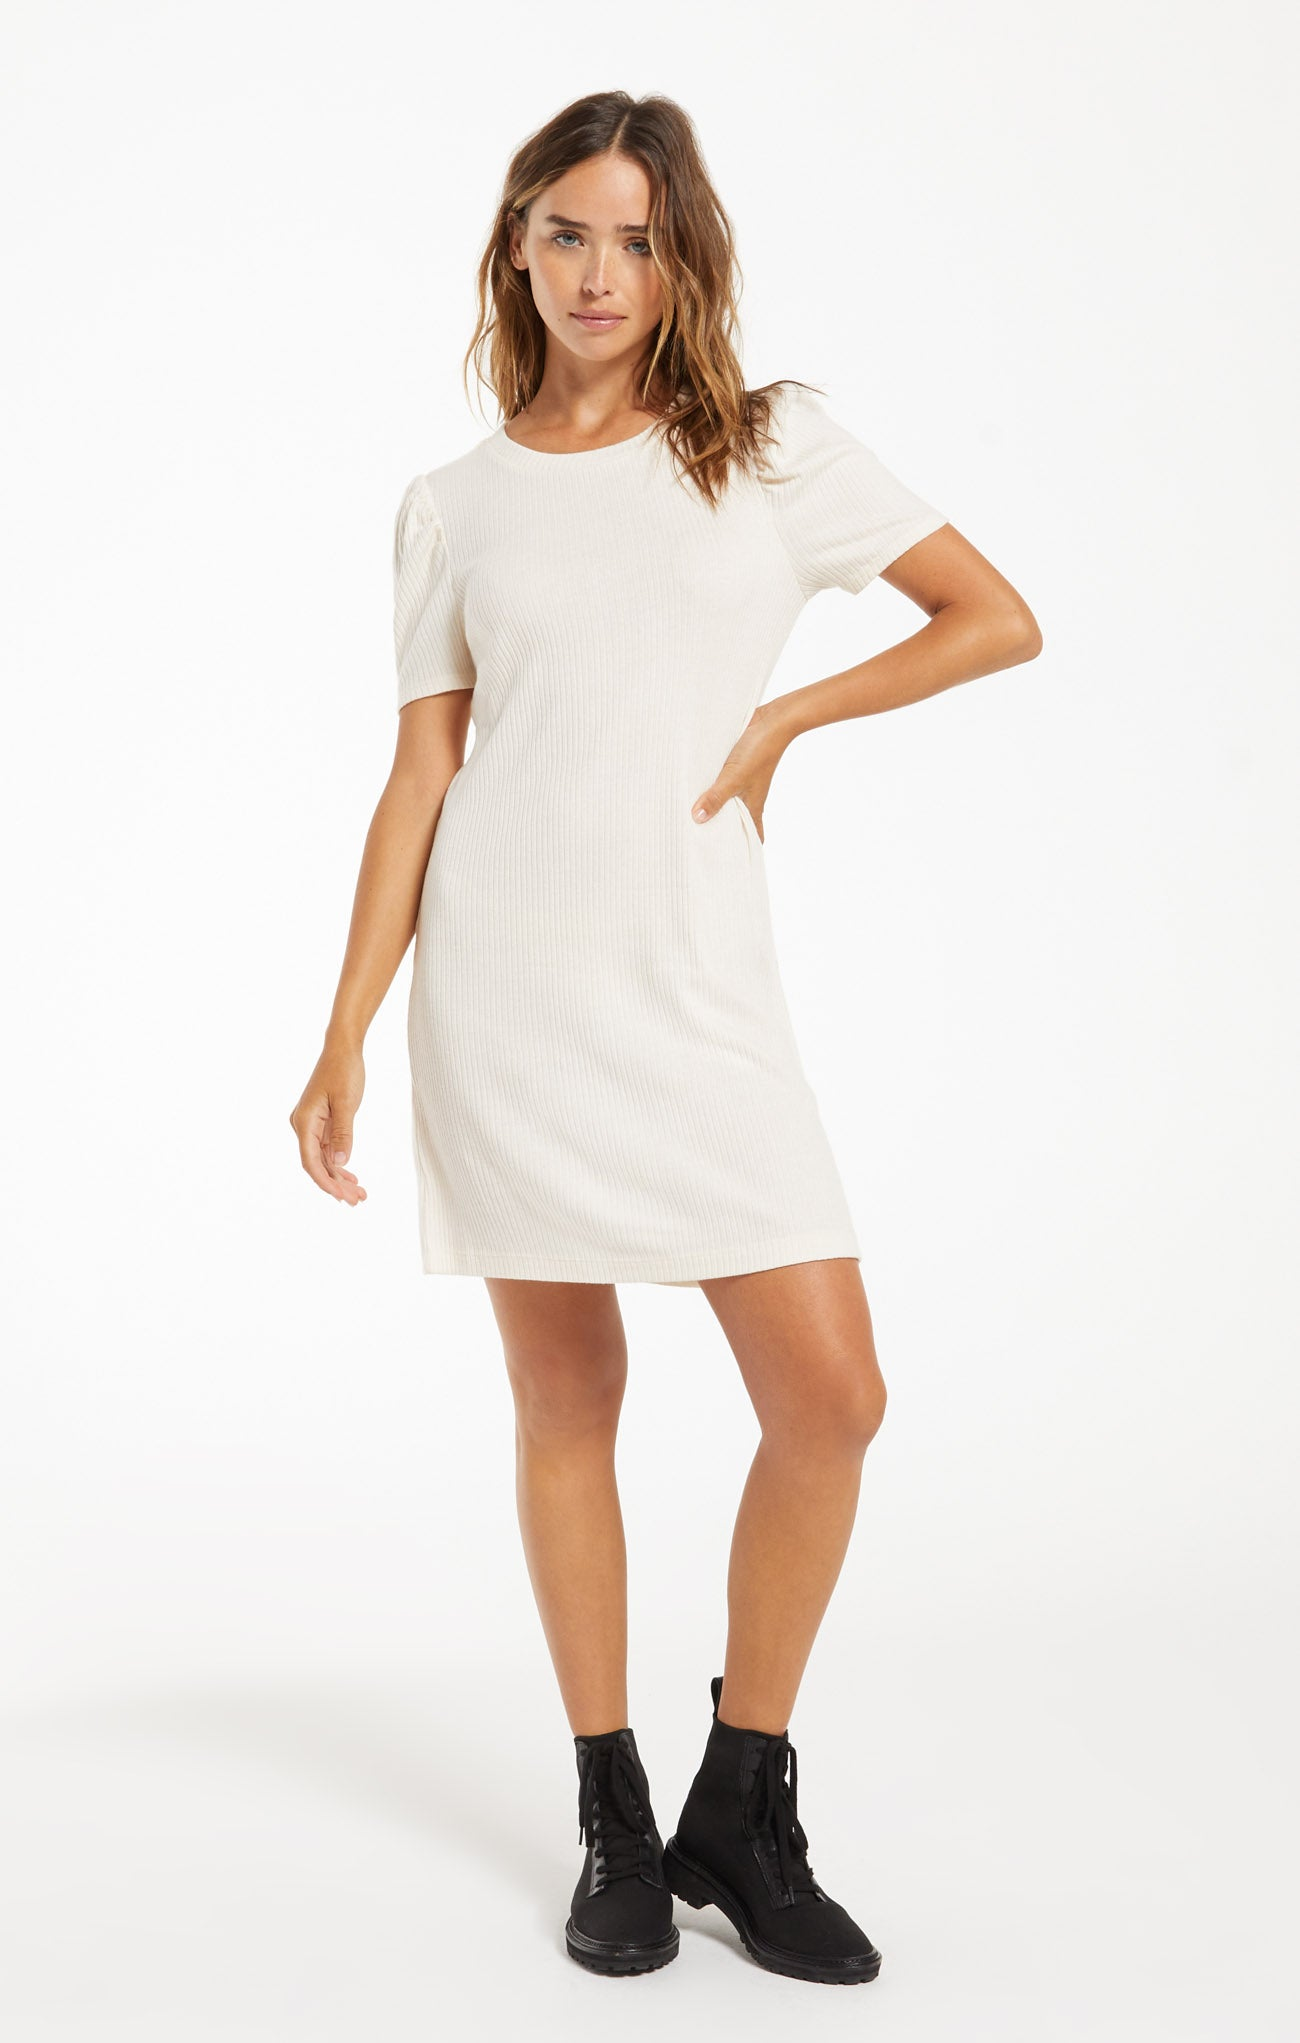 Dresses Kamryn Puff Sleeve Rib Dress Kamryn Puff Sleeve Rib Dress